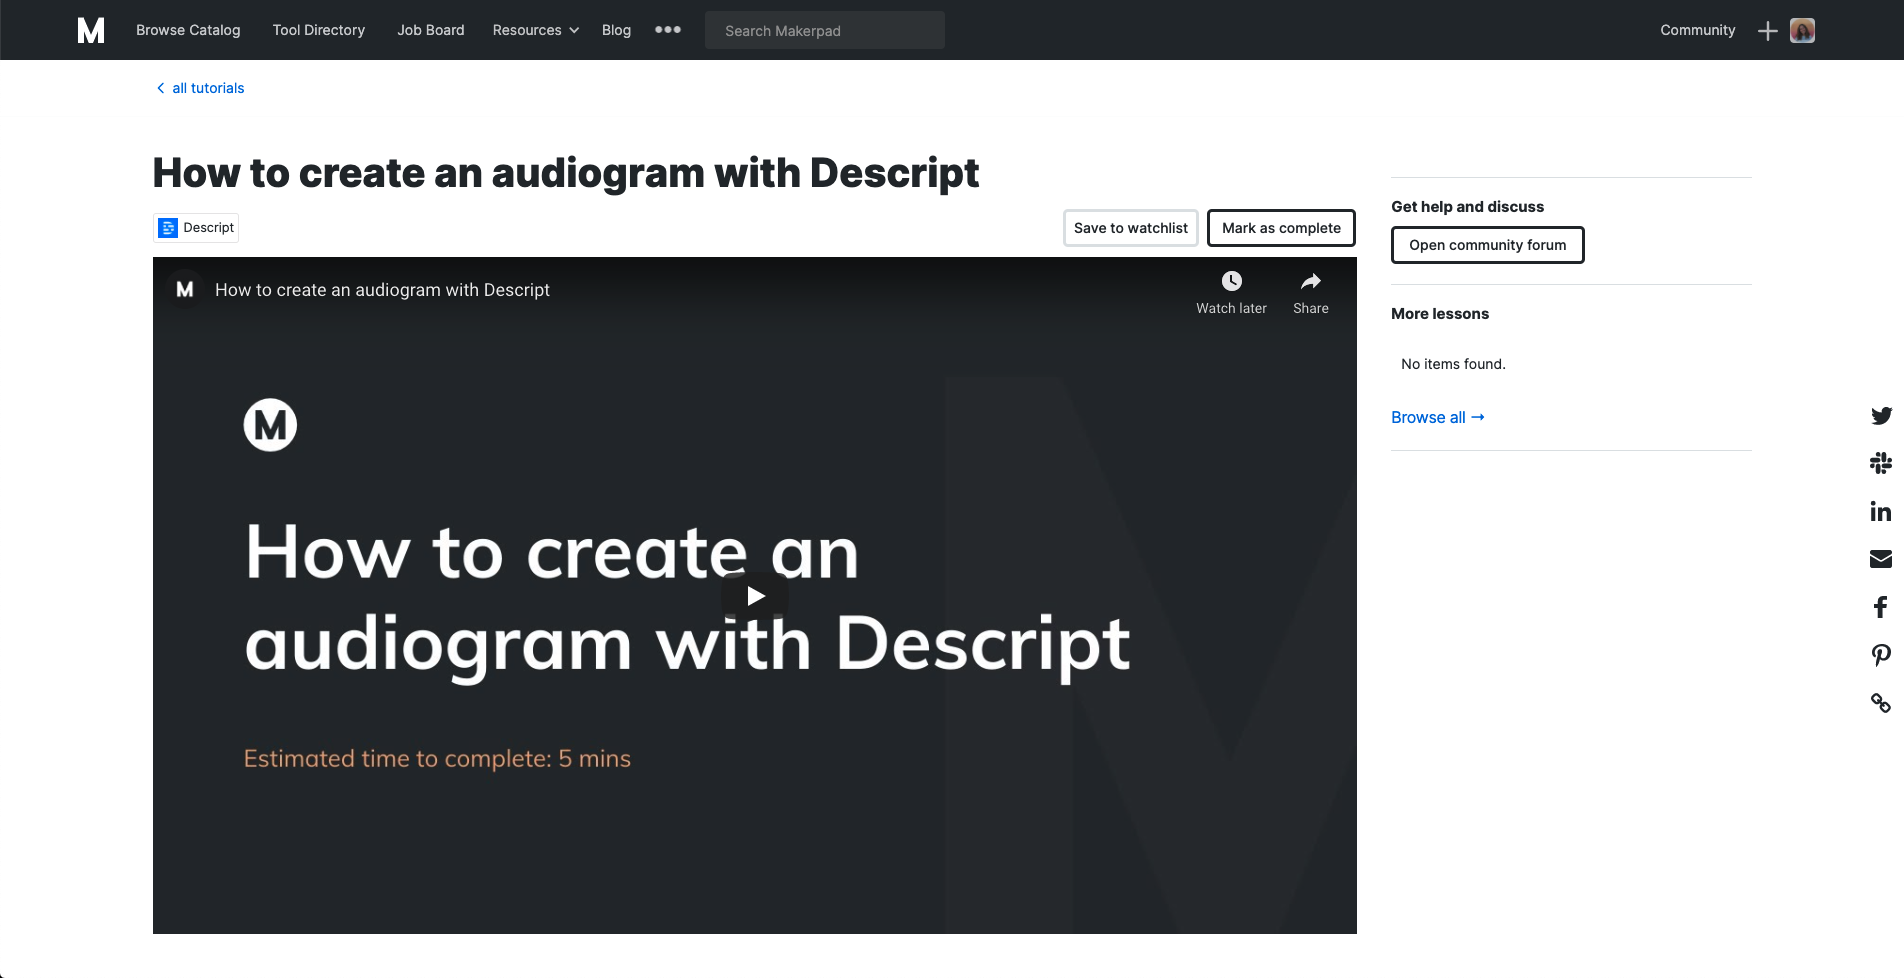 How to create an audiogram with Descript